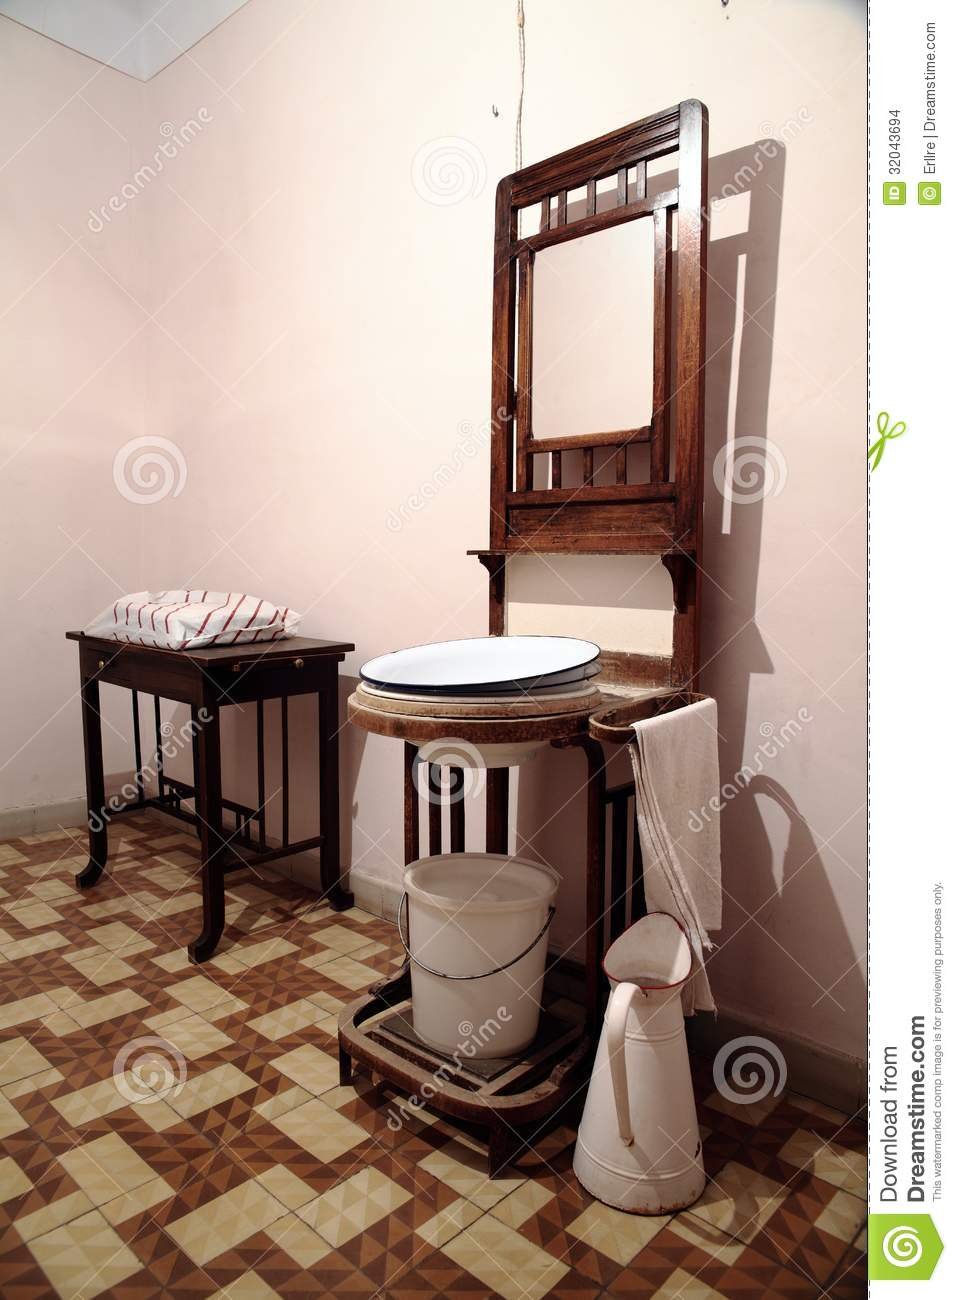 very old dirty sink with rusty metal drain royalty free stock photo 82945011. Black Bedroom Furniture Sets. Home Design Ideas